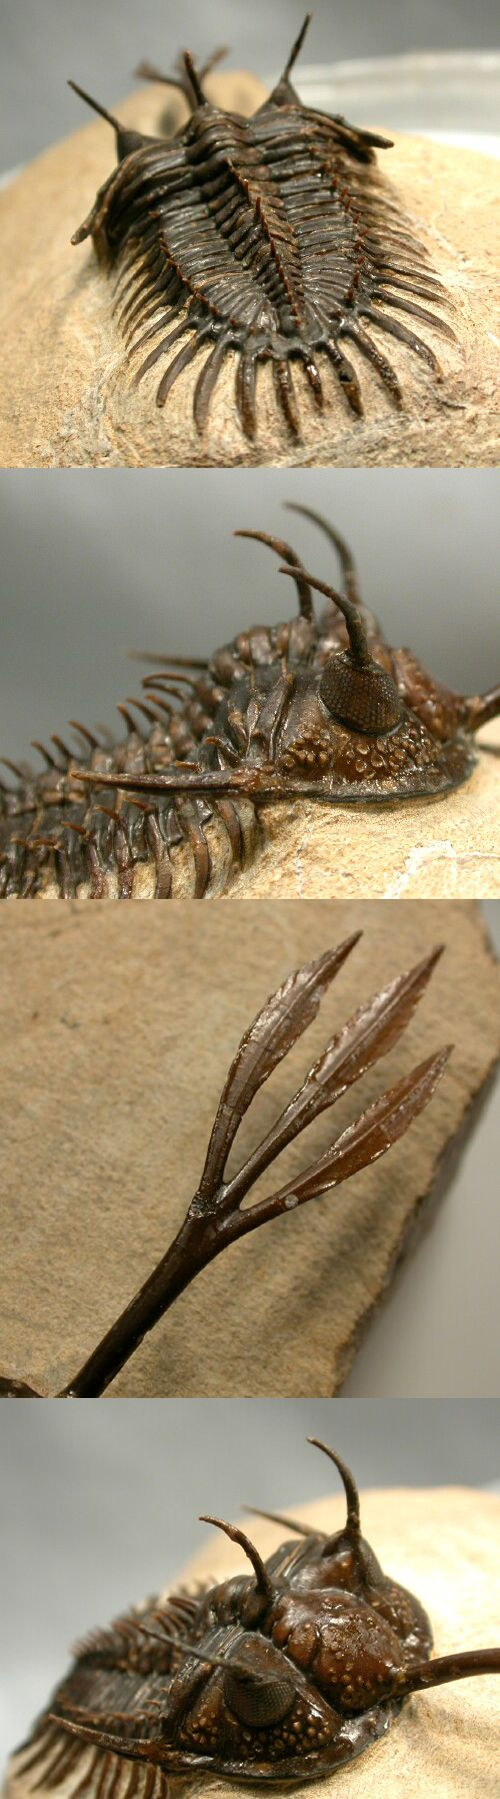 I want such a trilobite :)